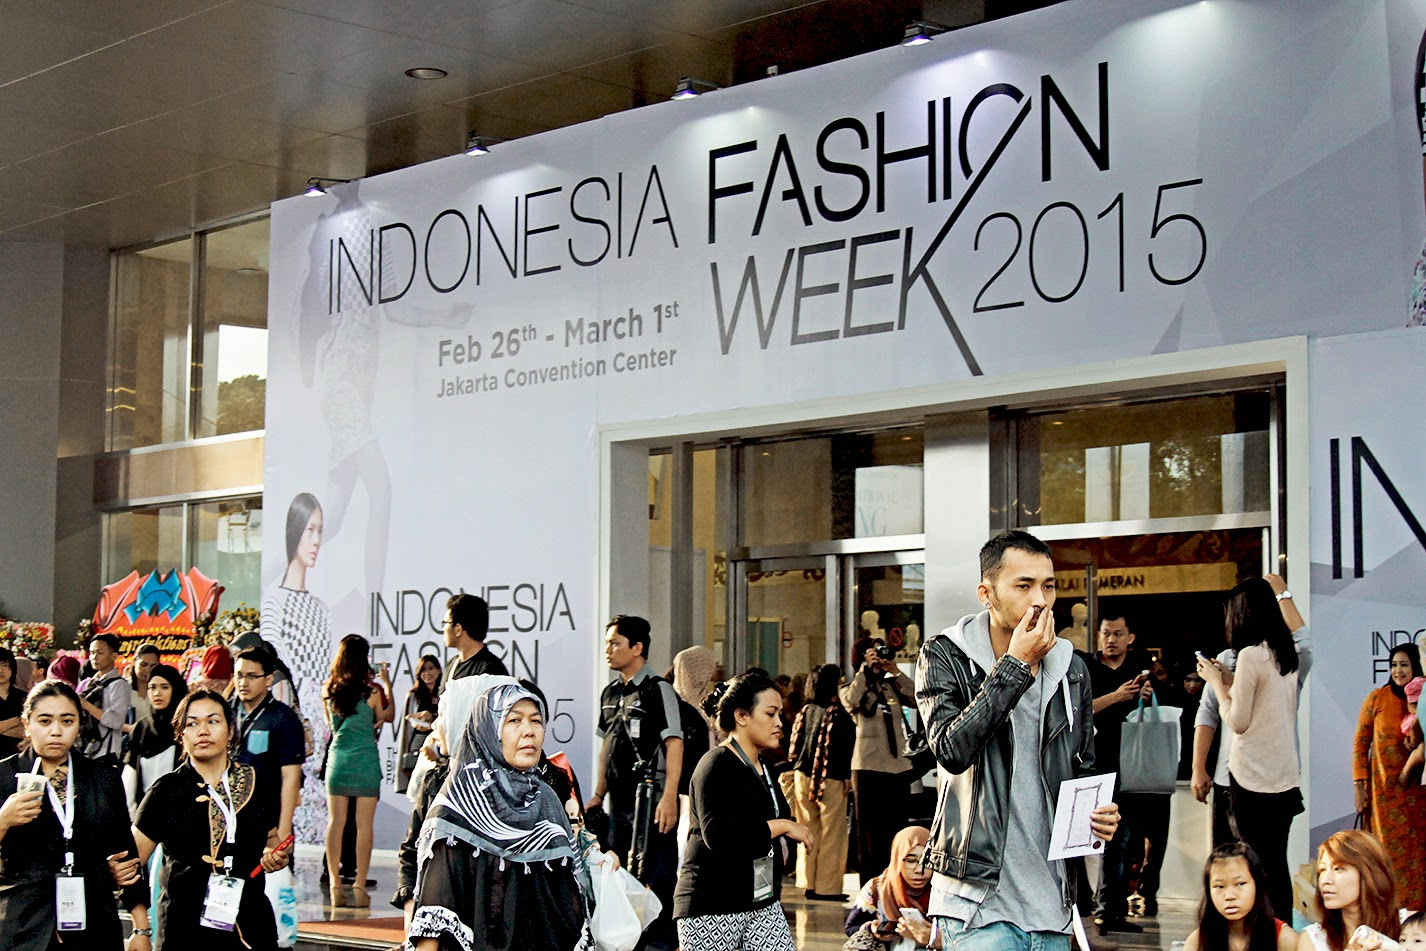 Indonesia fashion week 2015 vveekend 101 last weekend was indonesia fashion week 2015 and if you noticed i have put the ifw badge since last week so yes i got the blogger pass and invitation to stopboris Images